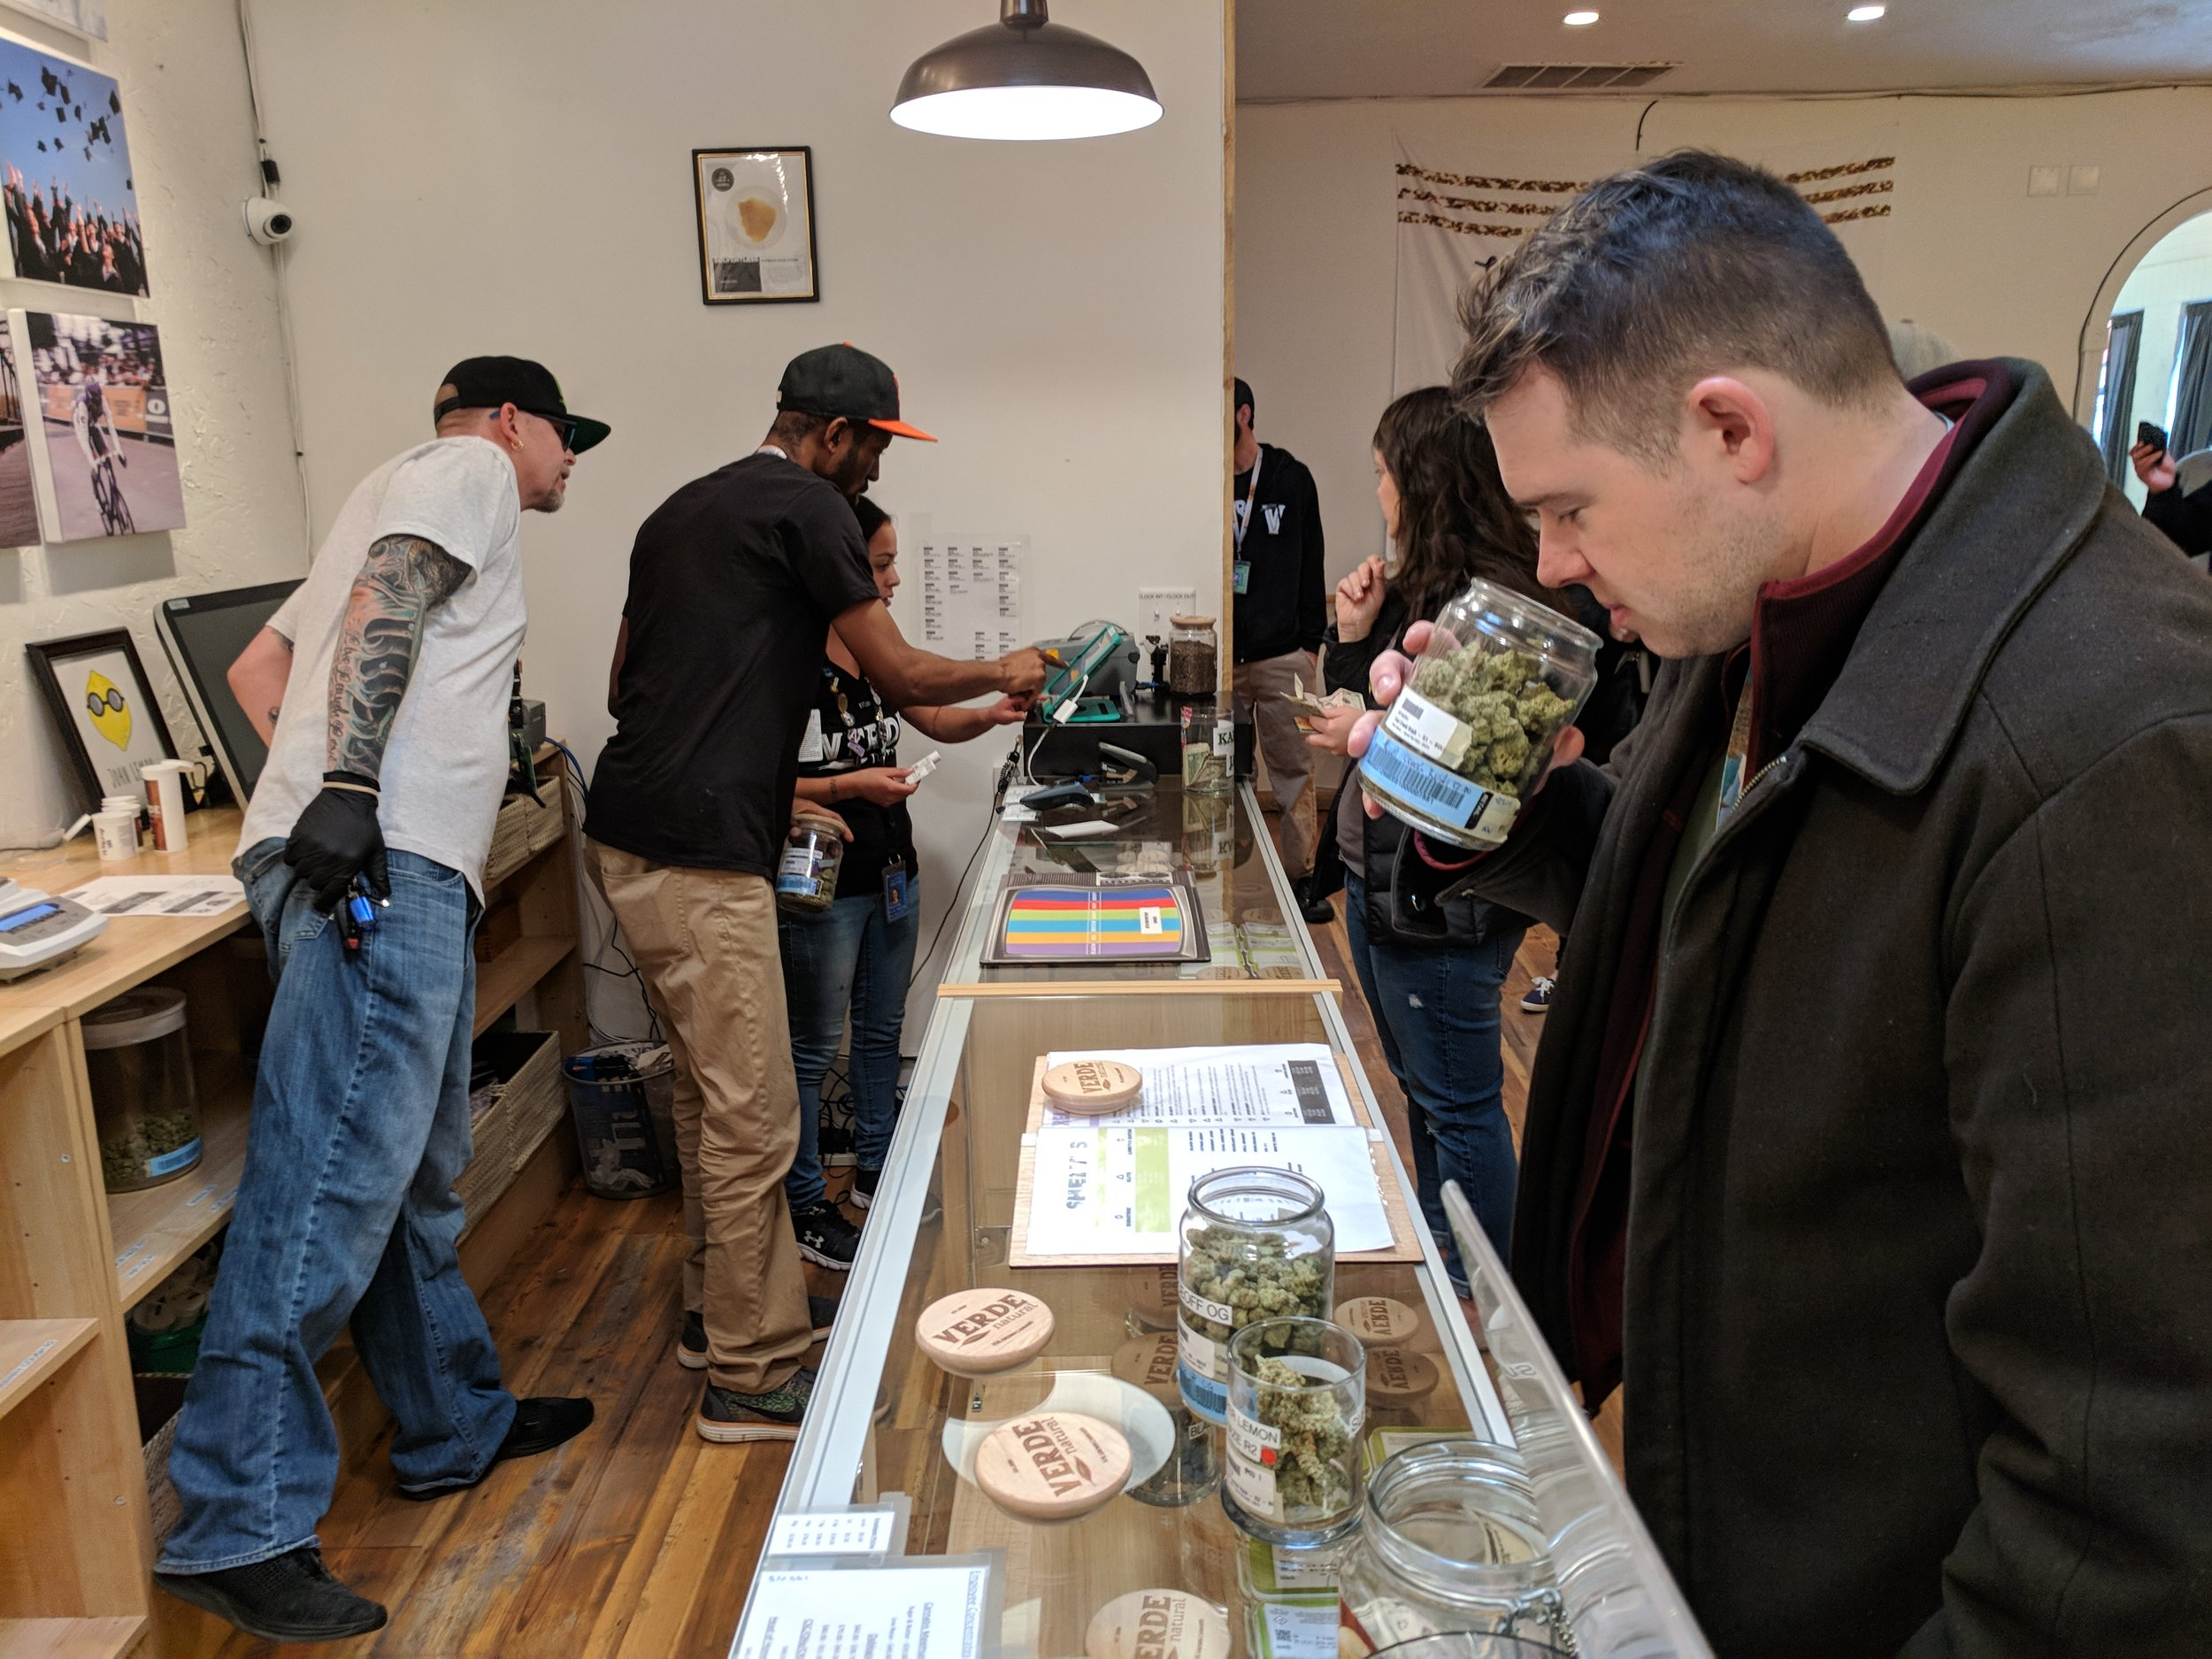 A cannabis tourist smells the marijuana product at a recreational dispensary in Denver, Colorado.   Photo Credit: My 420 Tours